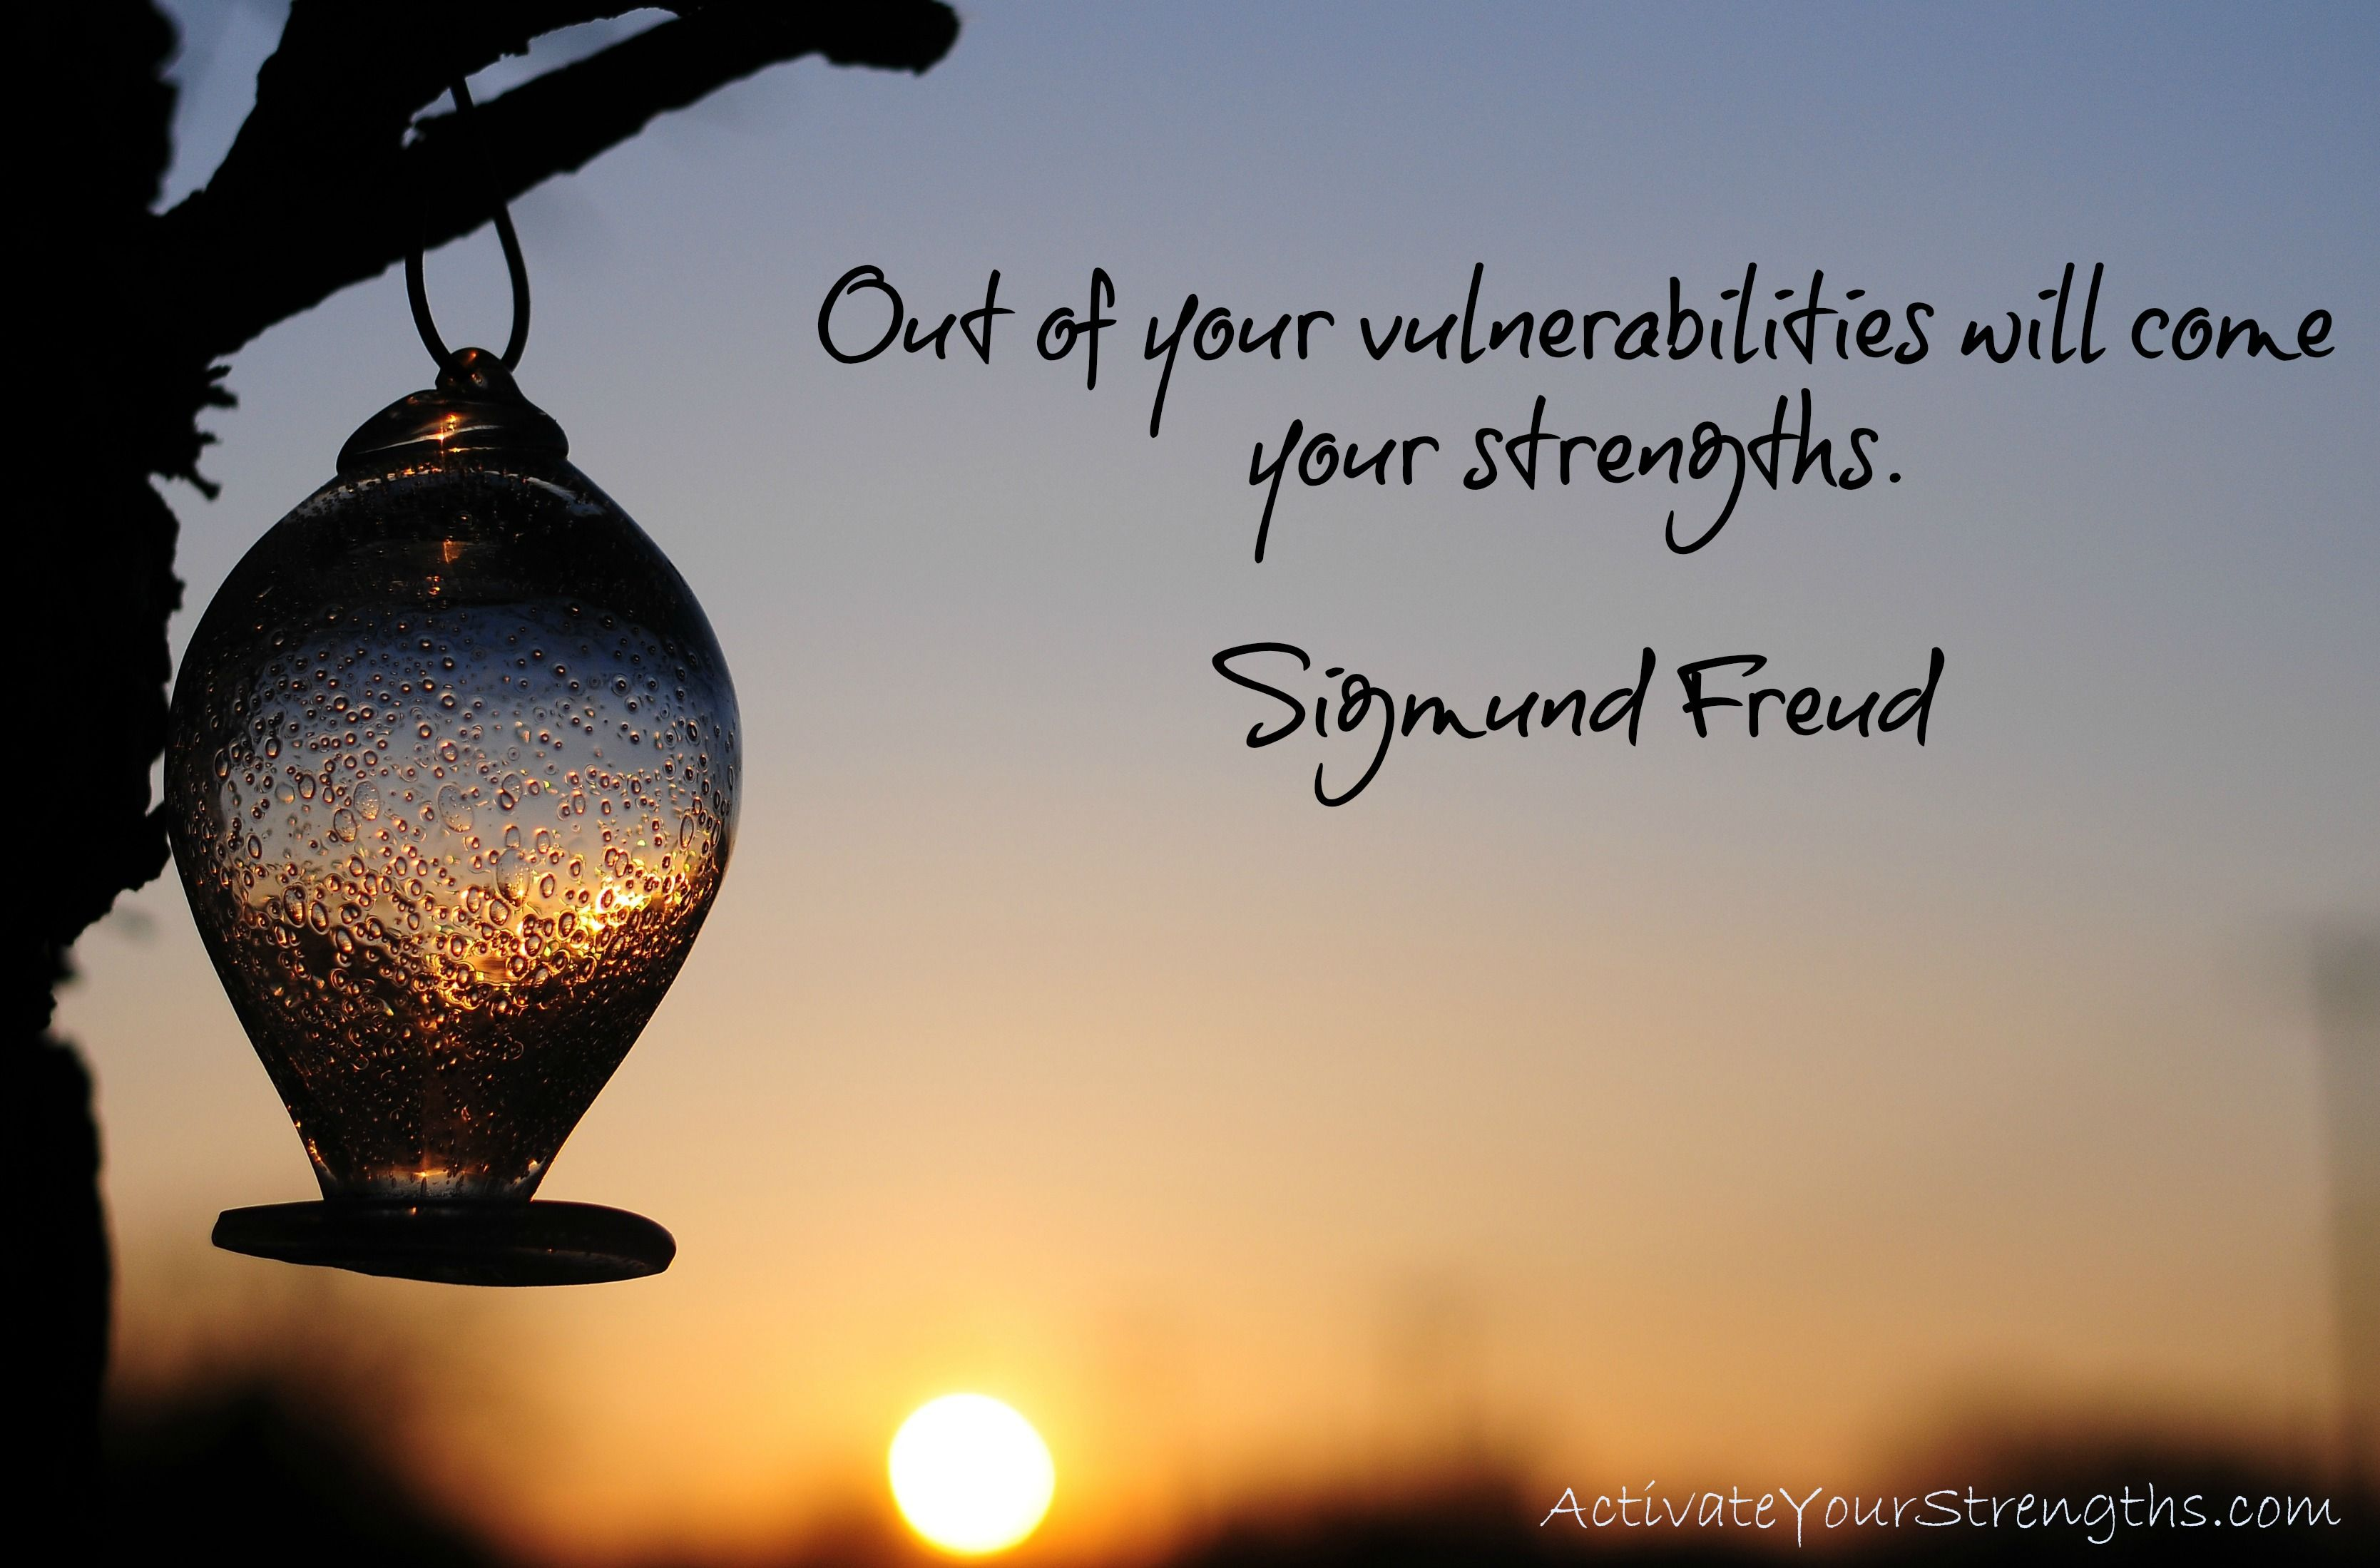 Being vulnerable... It's the way to live in your #Strengths!  www.ActivateYourStrengths.com